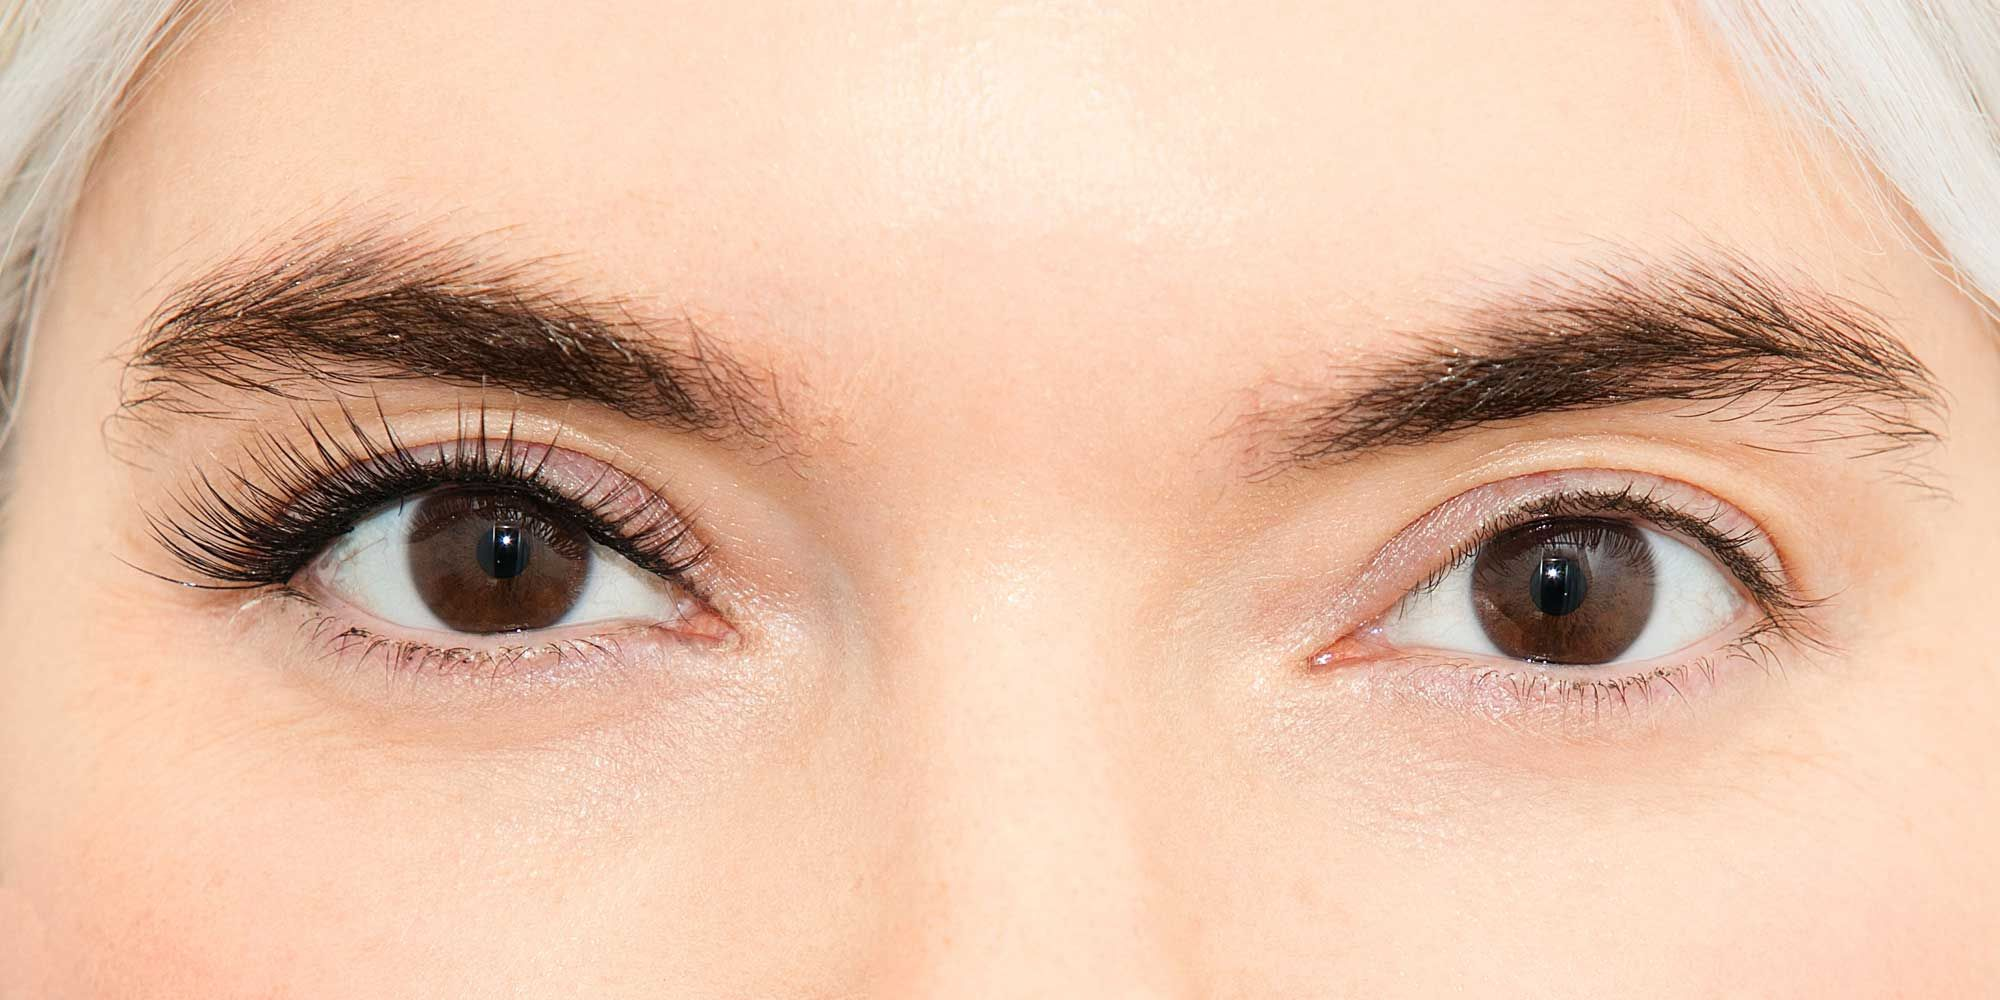 How To Apply Mascara Make Natural And Fake Lashes Look Fuller